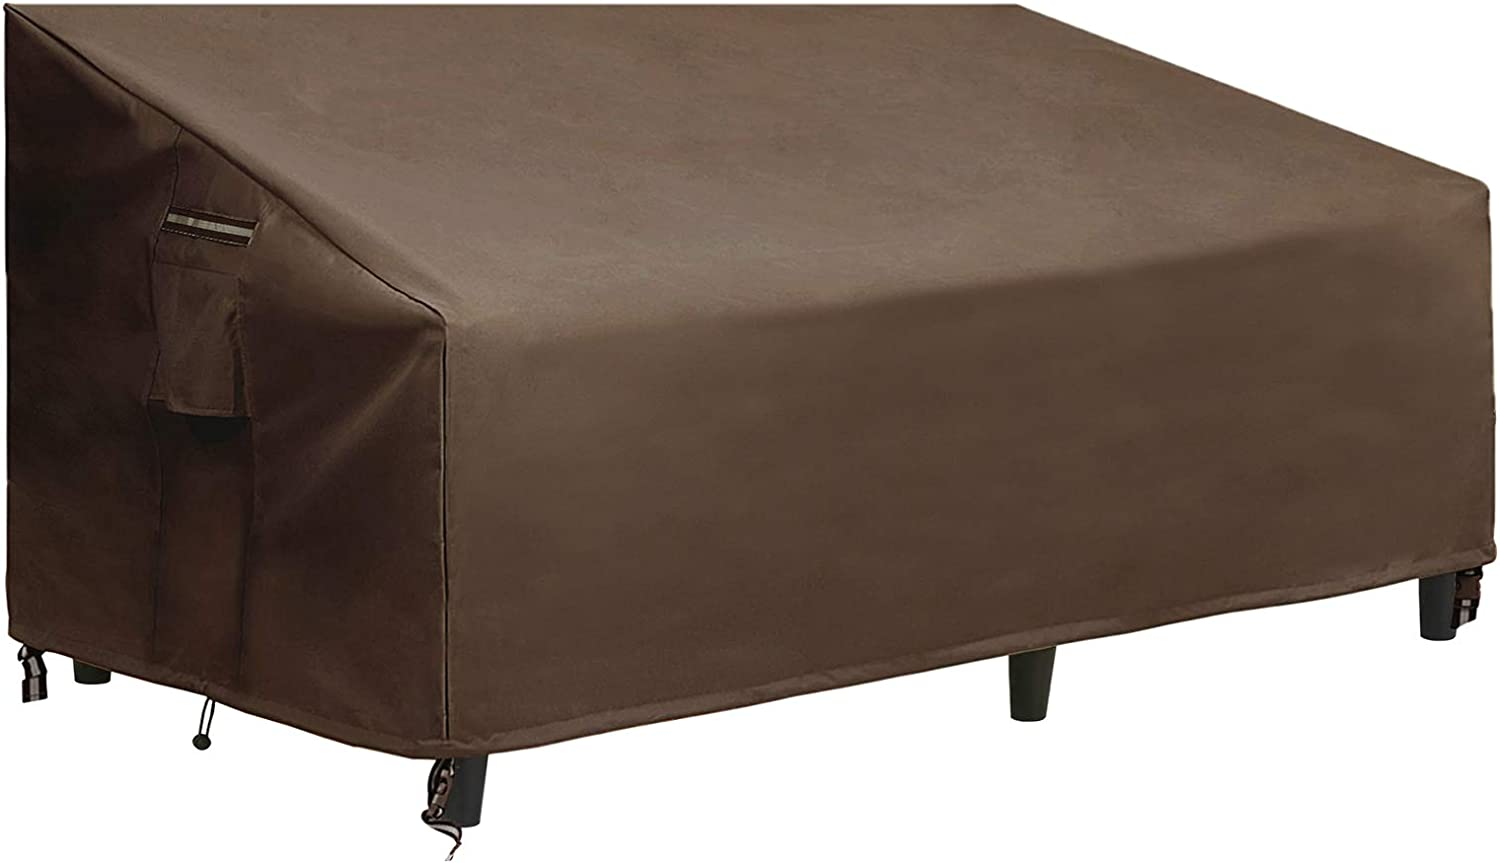 Ranking TOP17 High quality SONGMICS Patio Sofa Cover 600D Bench Chaise 3-Seater Loung Deep